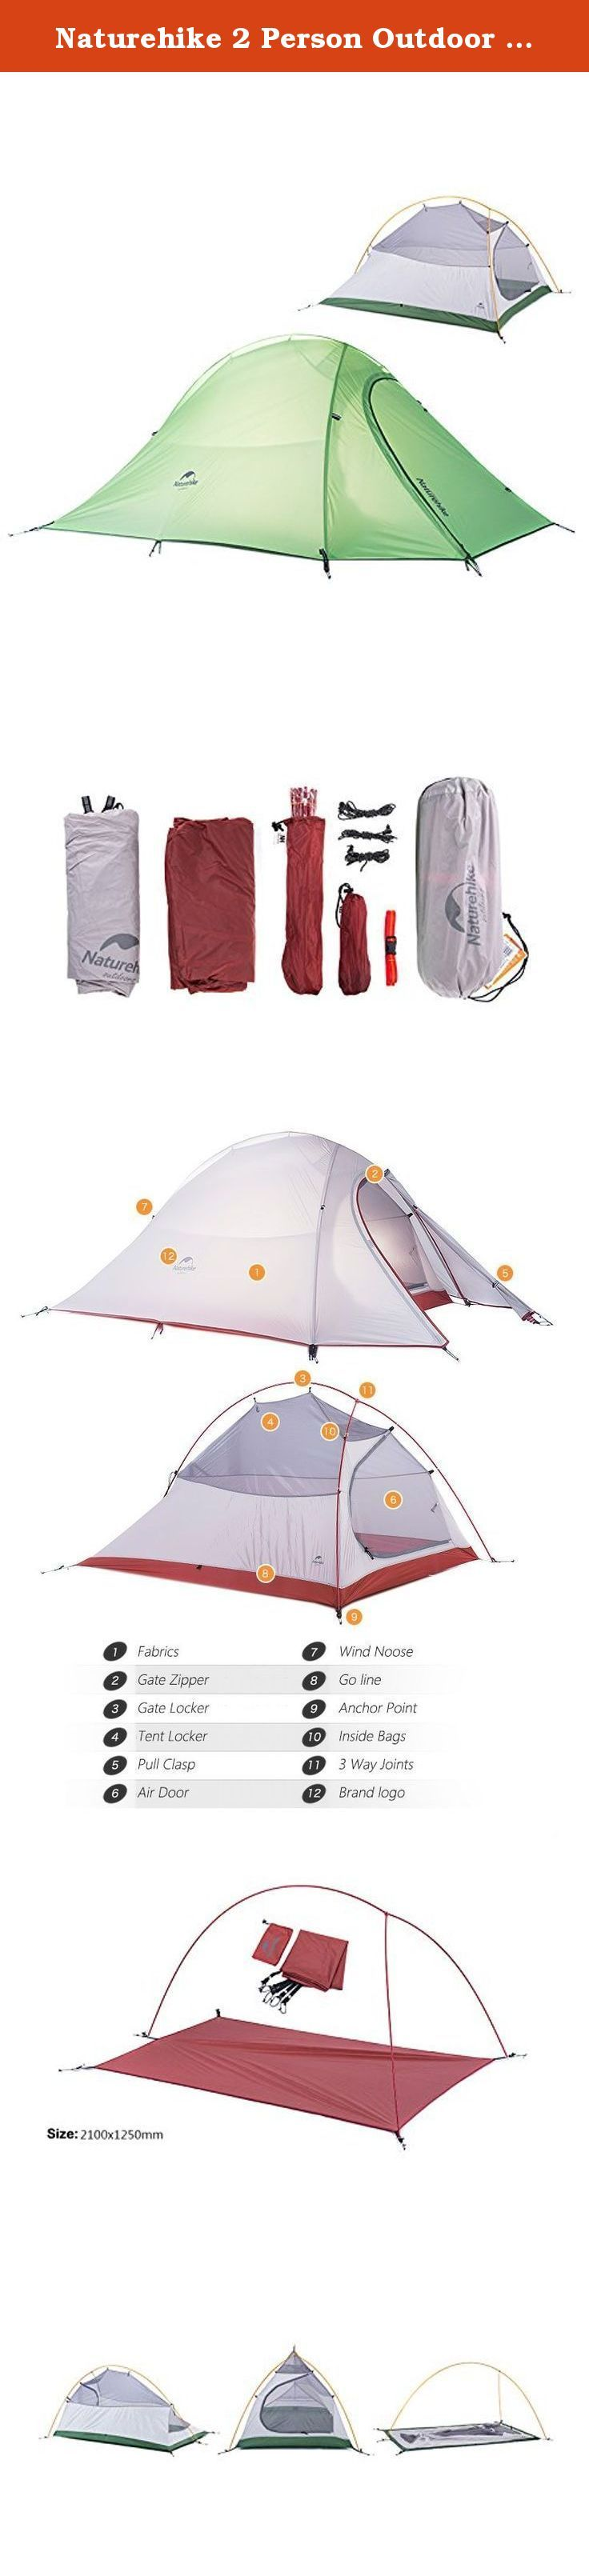 Naturehike 2 Person Outdoor Tent Double-layer Tent Waterproof Camping Tent Lightweight Tent(Green(210T Checked Fabric). Naturehike 2 Person Outdoor Tent Double-layer Tent Waterproof Camping Tent Lightweight Tent(Green(210T Checked Fabric).